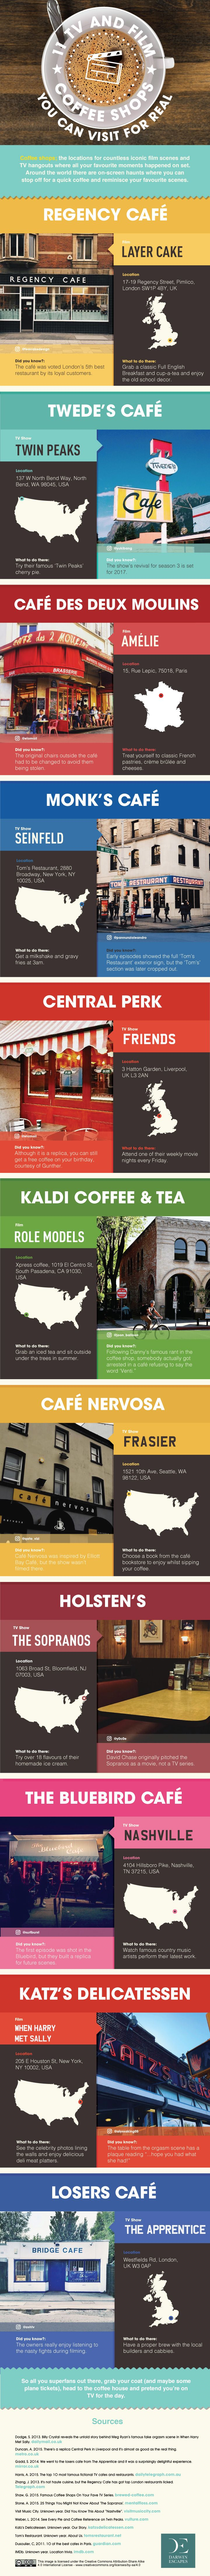 11 Film And TV Coffee Shops You Can Visit For Real #Infographic